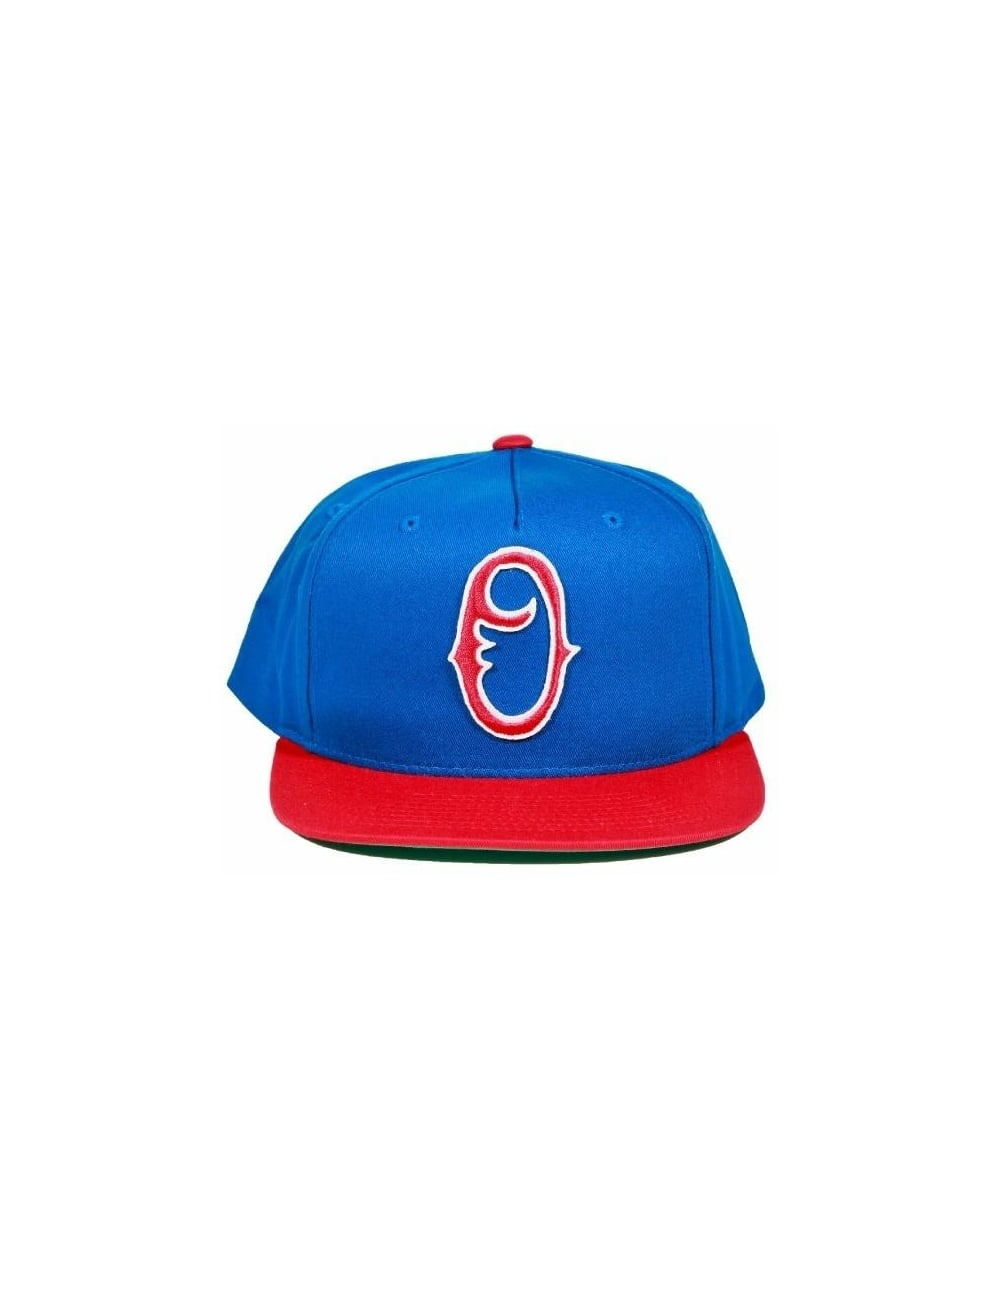 Obey Clothing Staple Snapback - Blue Red - Hat Shop from Fat Buddha ... 5115eff46831